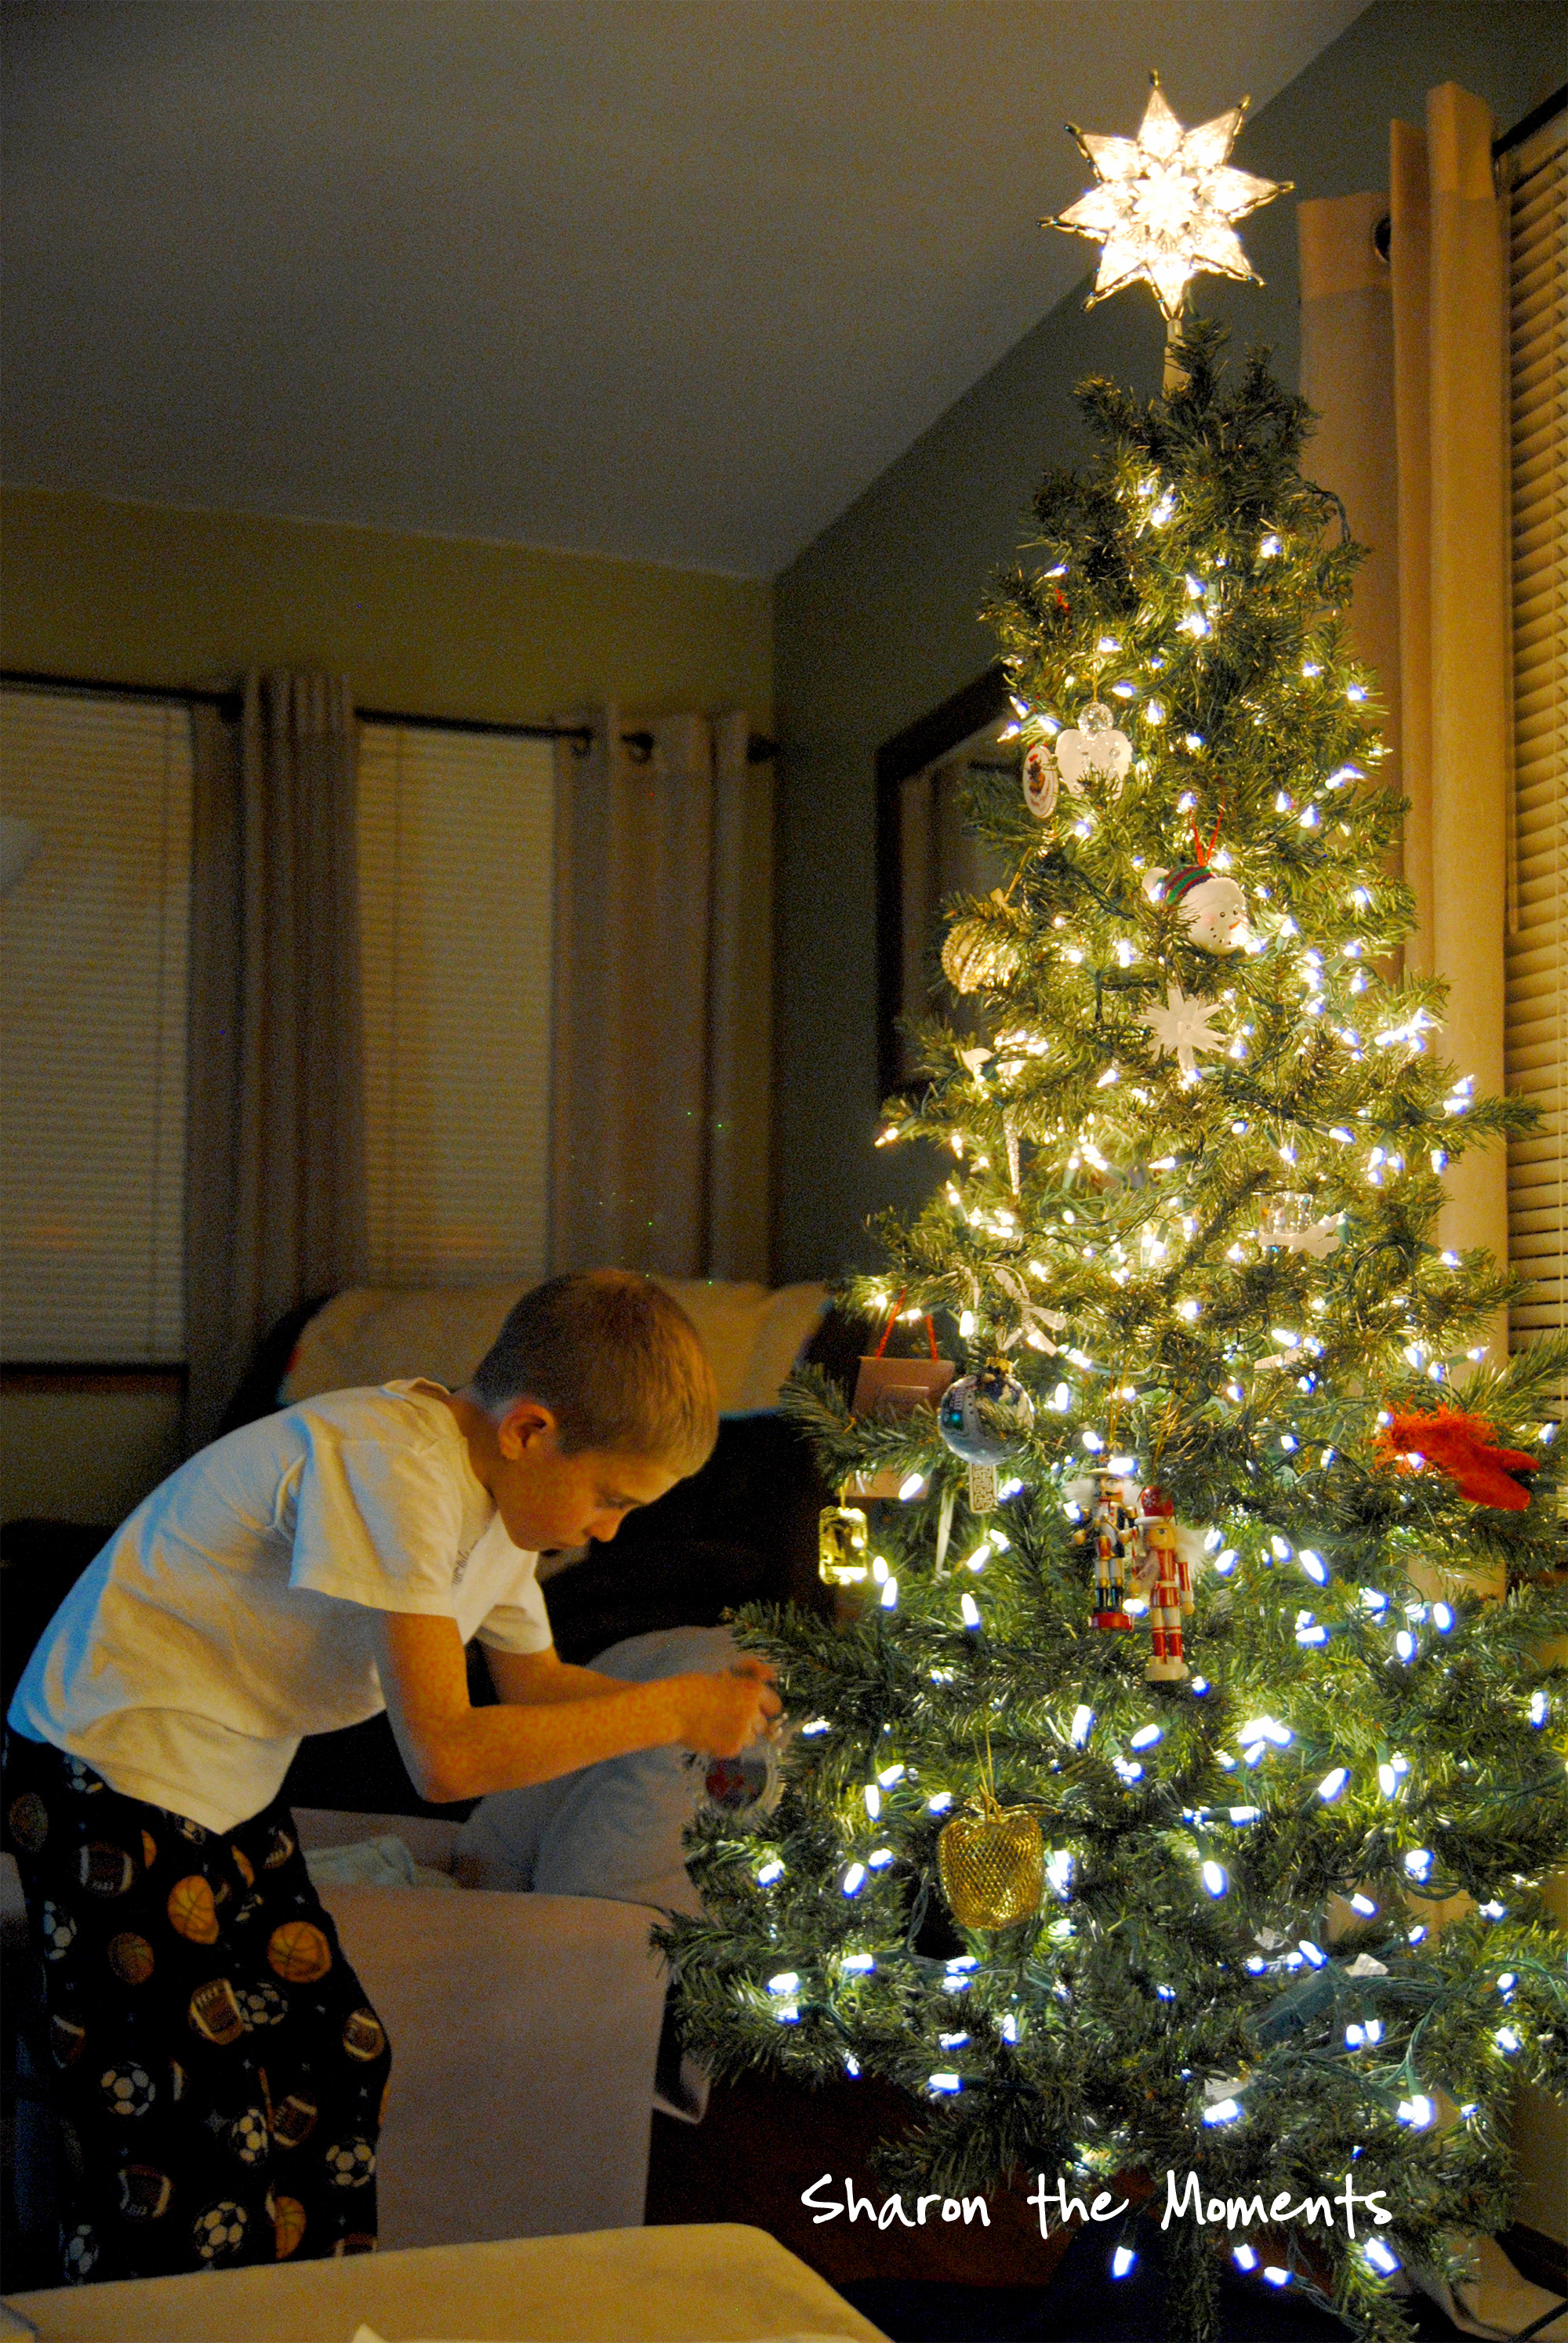 Decorated Christmas Tree|Sharon the Moments blog